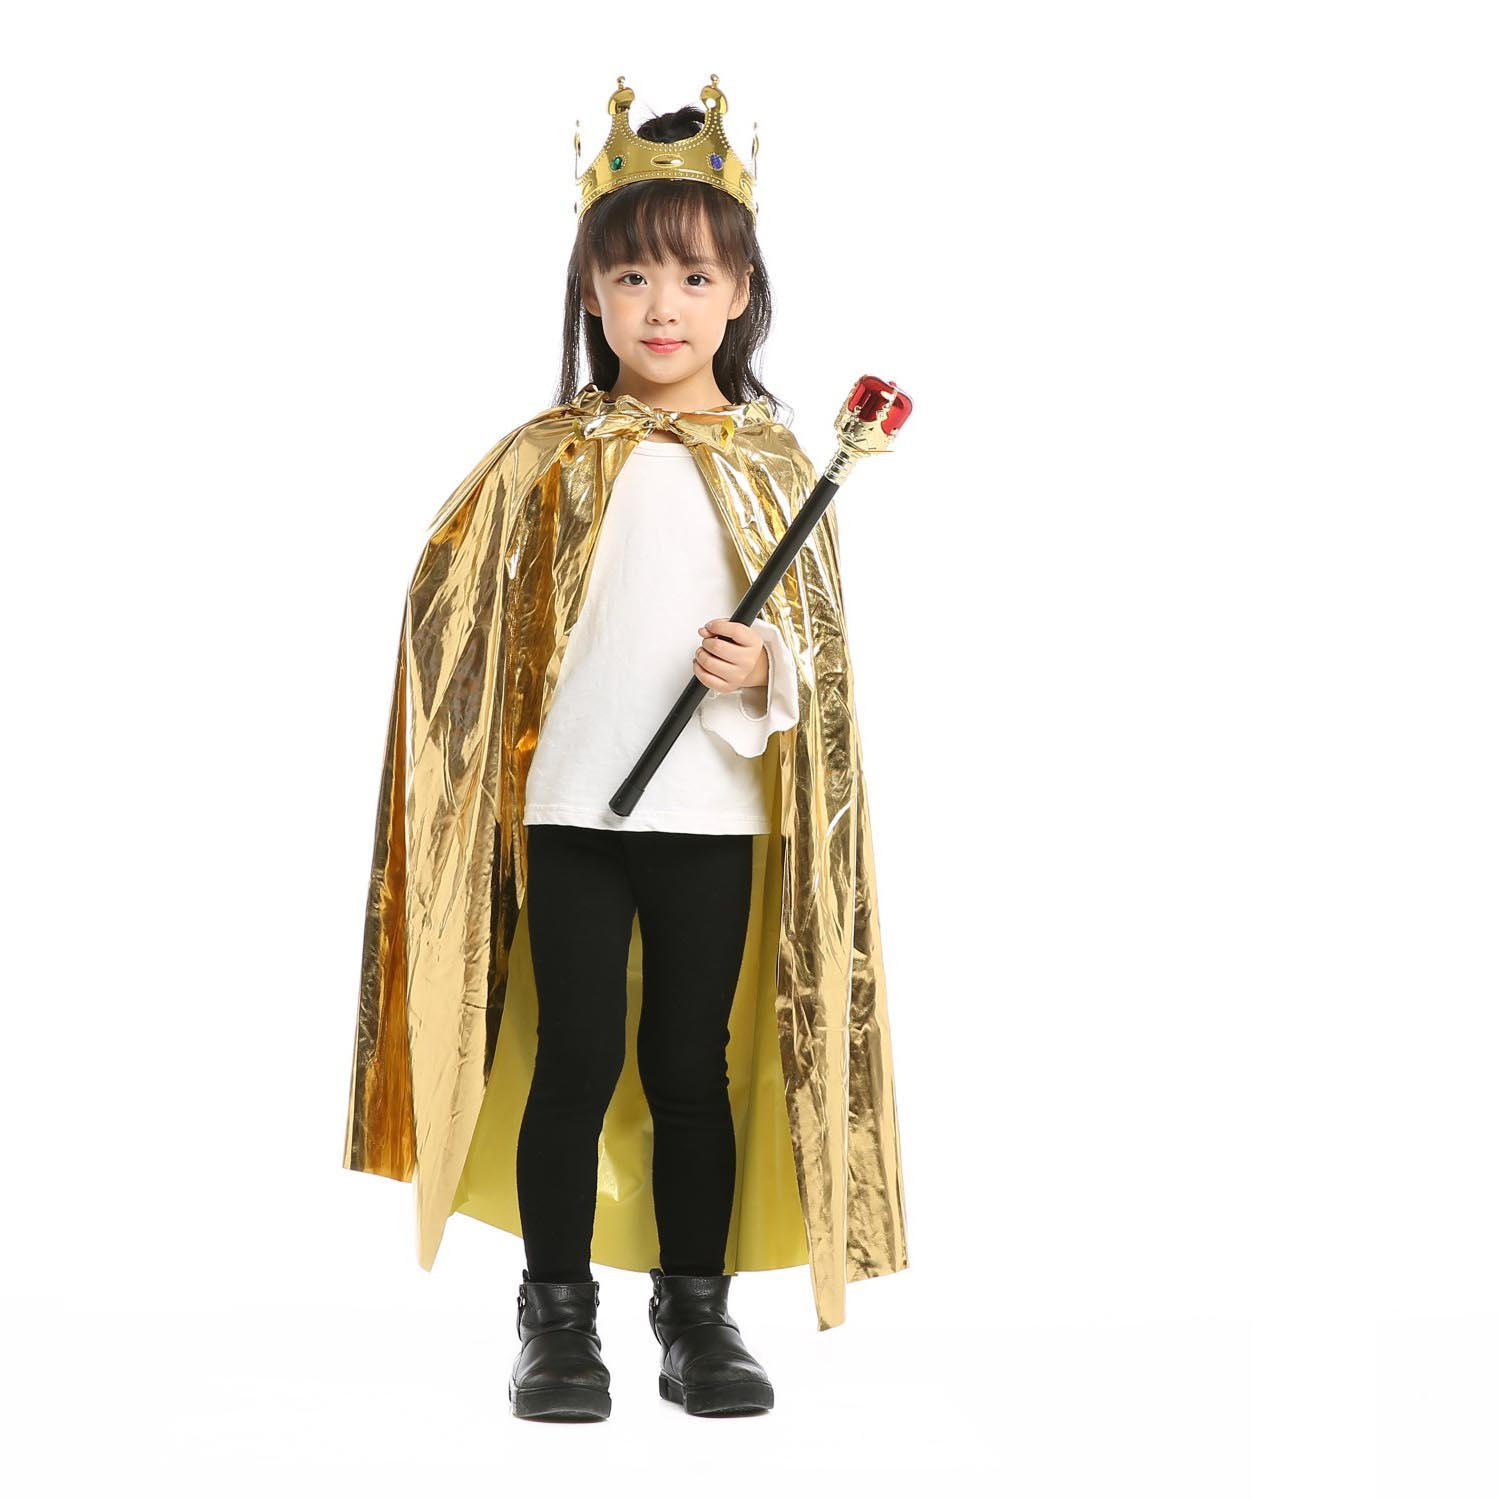 Boys Girls Princess Cloak Prince Crown Sceptre King Queen Birthday Party Costume For Kids Children CosplayCarnival